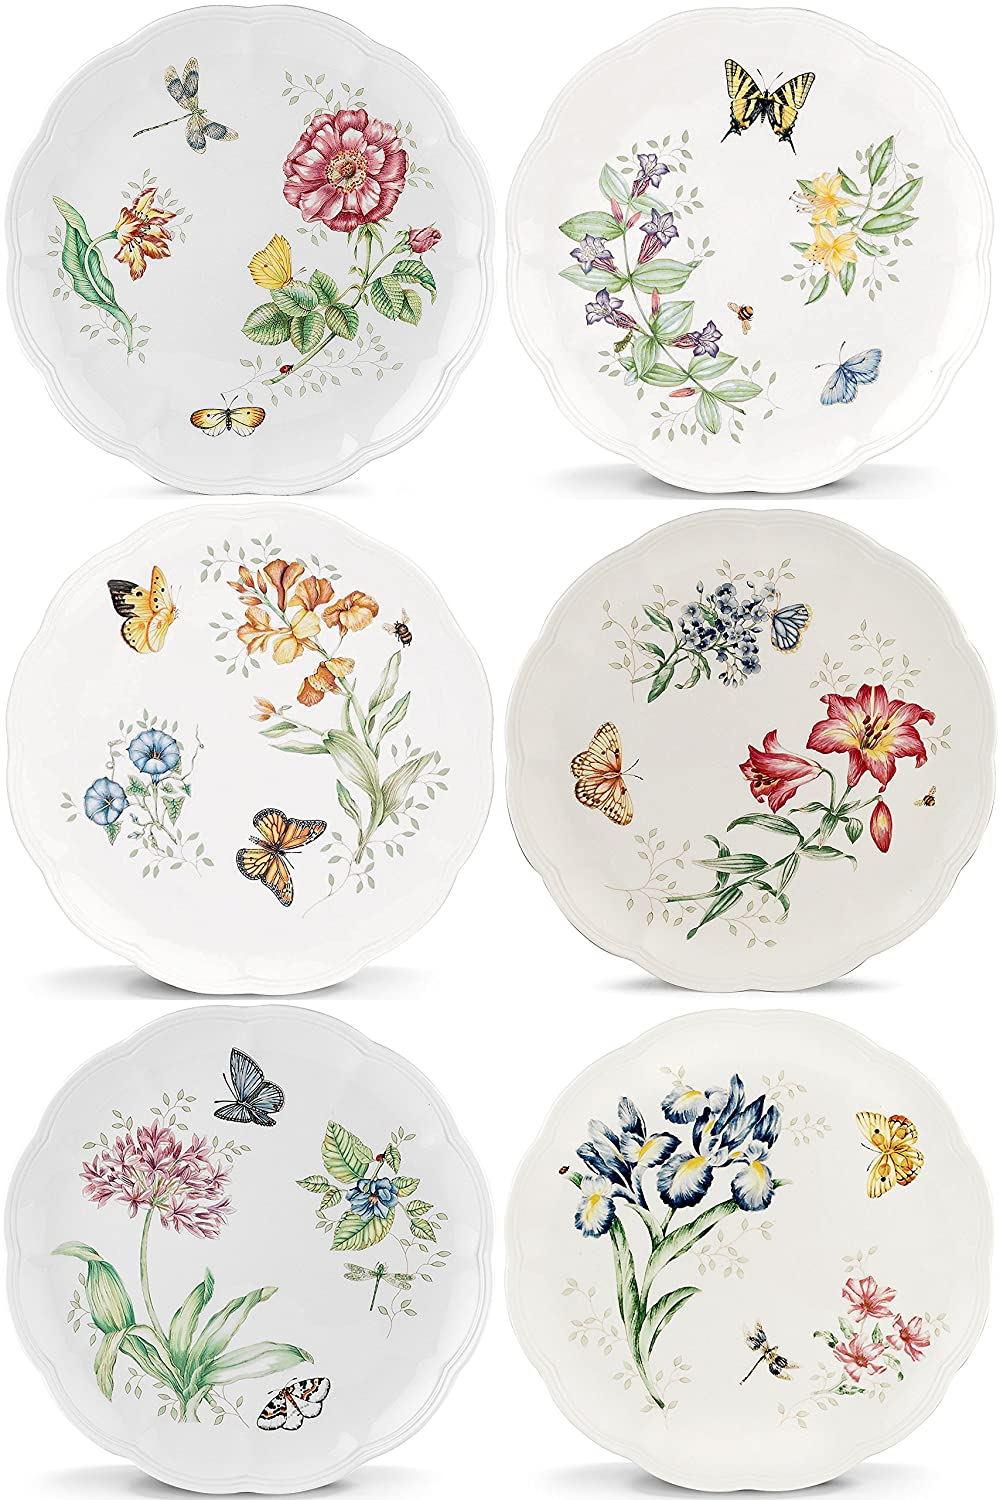 Lenox Butterfly Meadow Dinner Plates, Assorted Set of 6